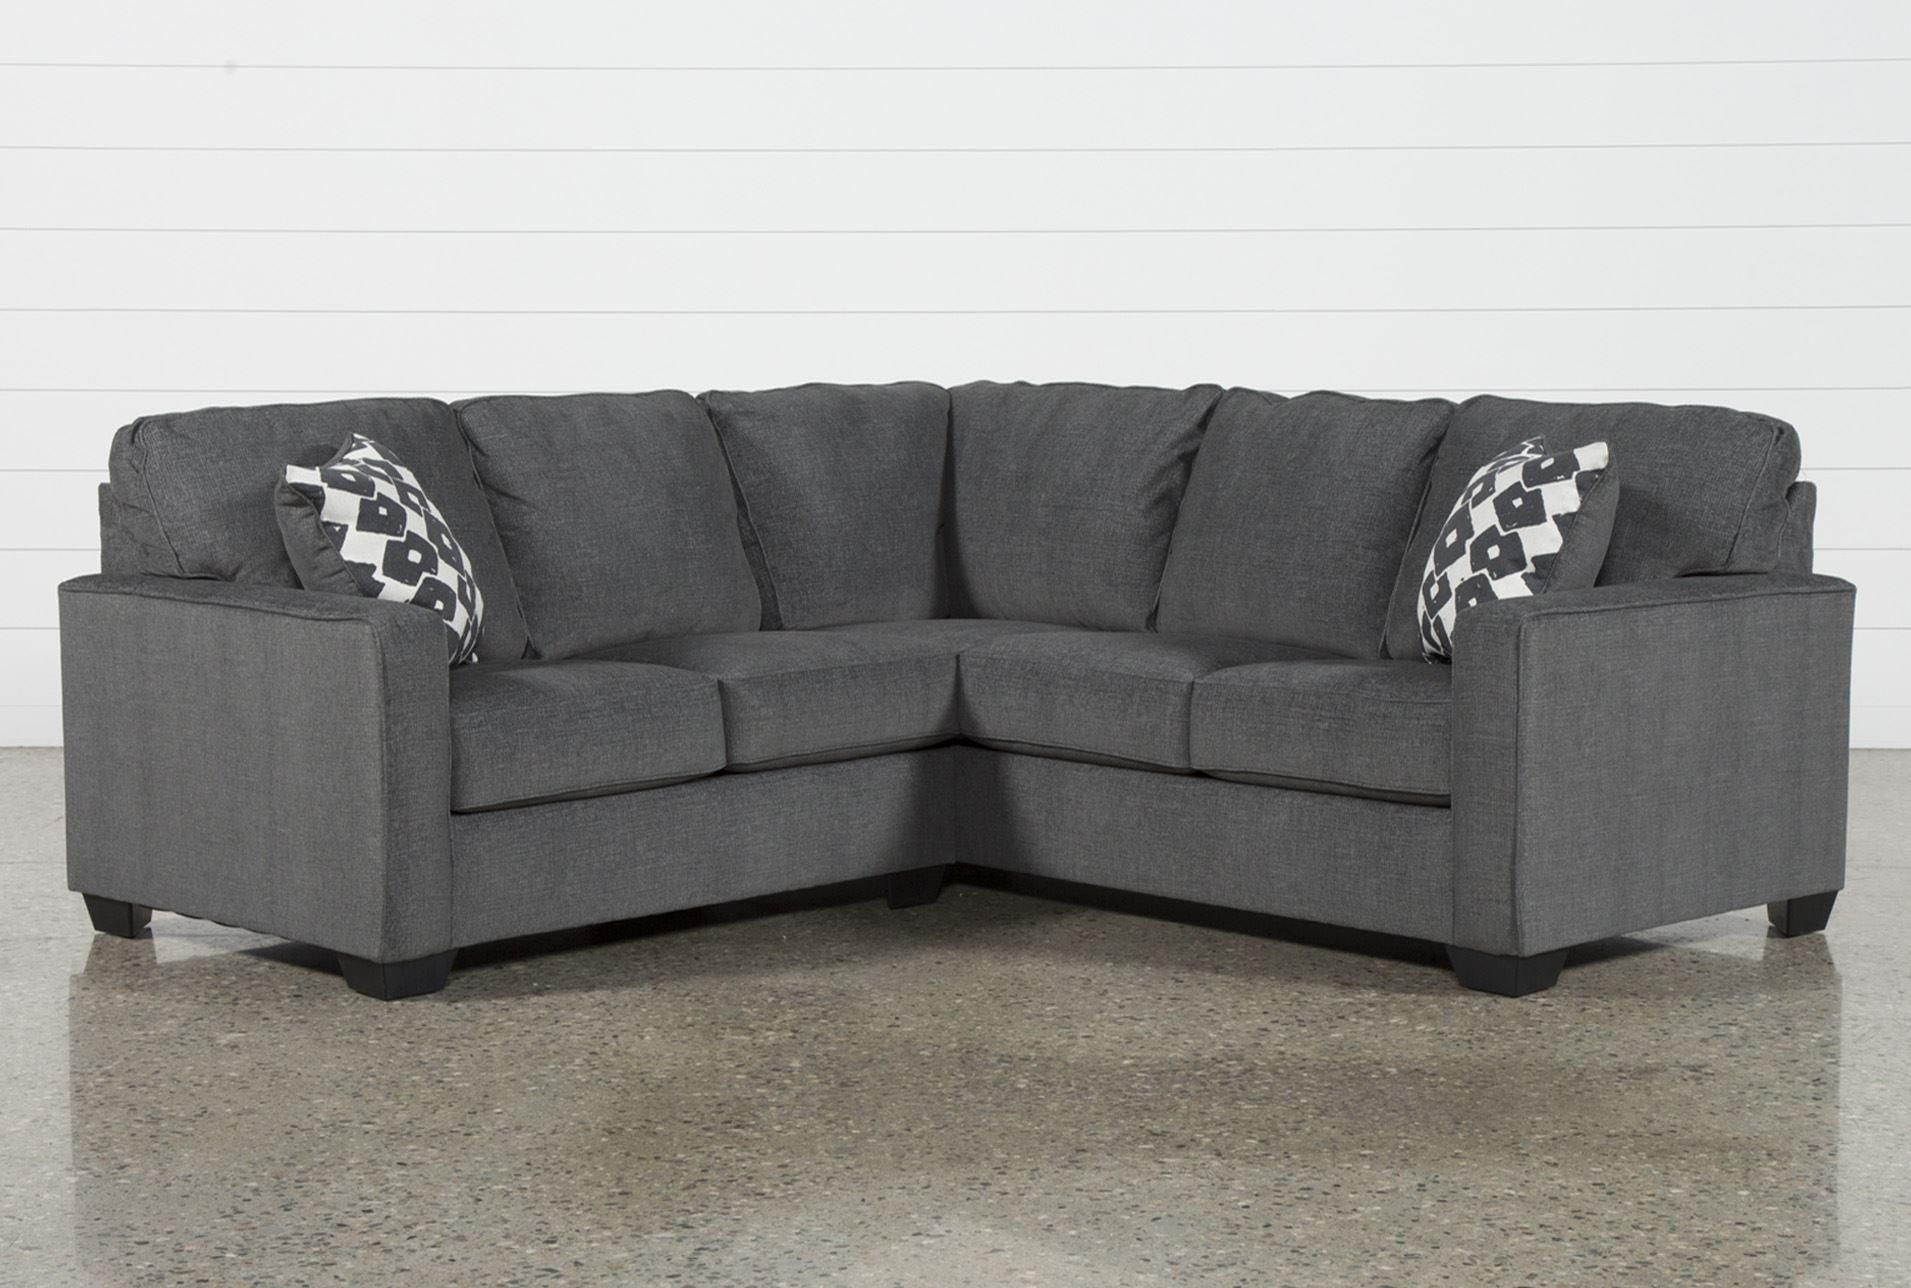 Turdur 2 Piece Sectional W/laf Loveseat In 2018 | Products with Elm Grande Ii 2 Piece Sectionals (Image 26 of 30)